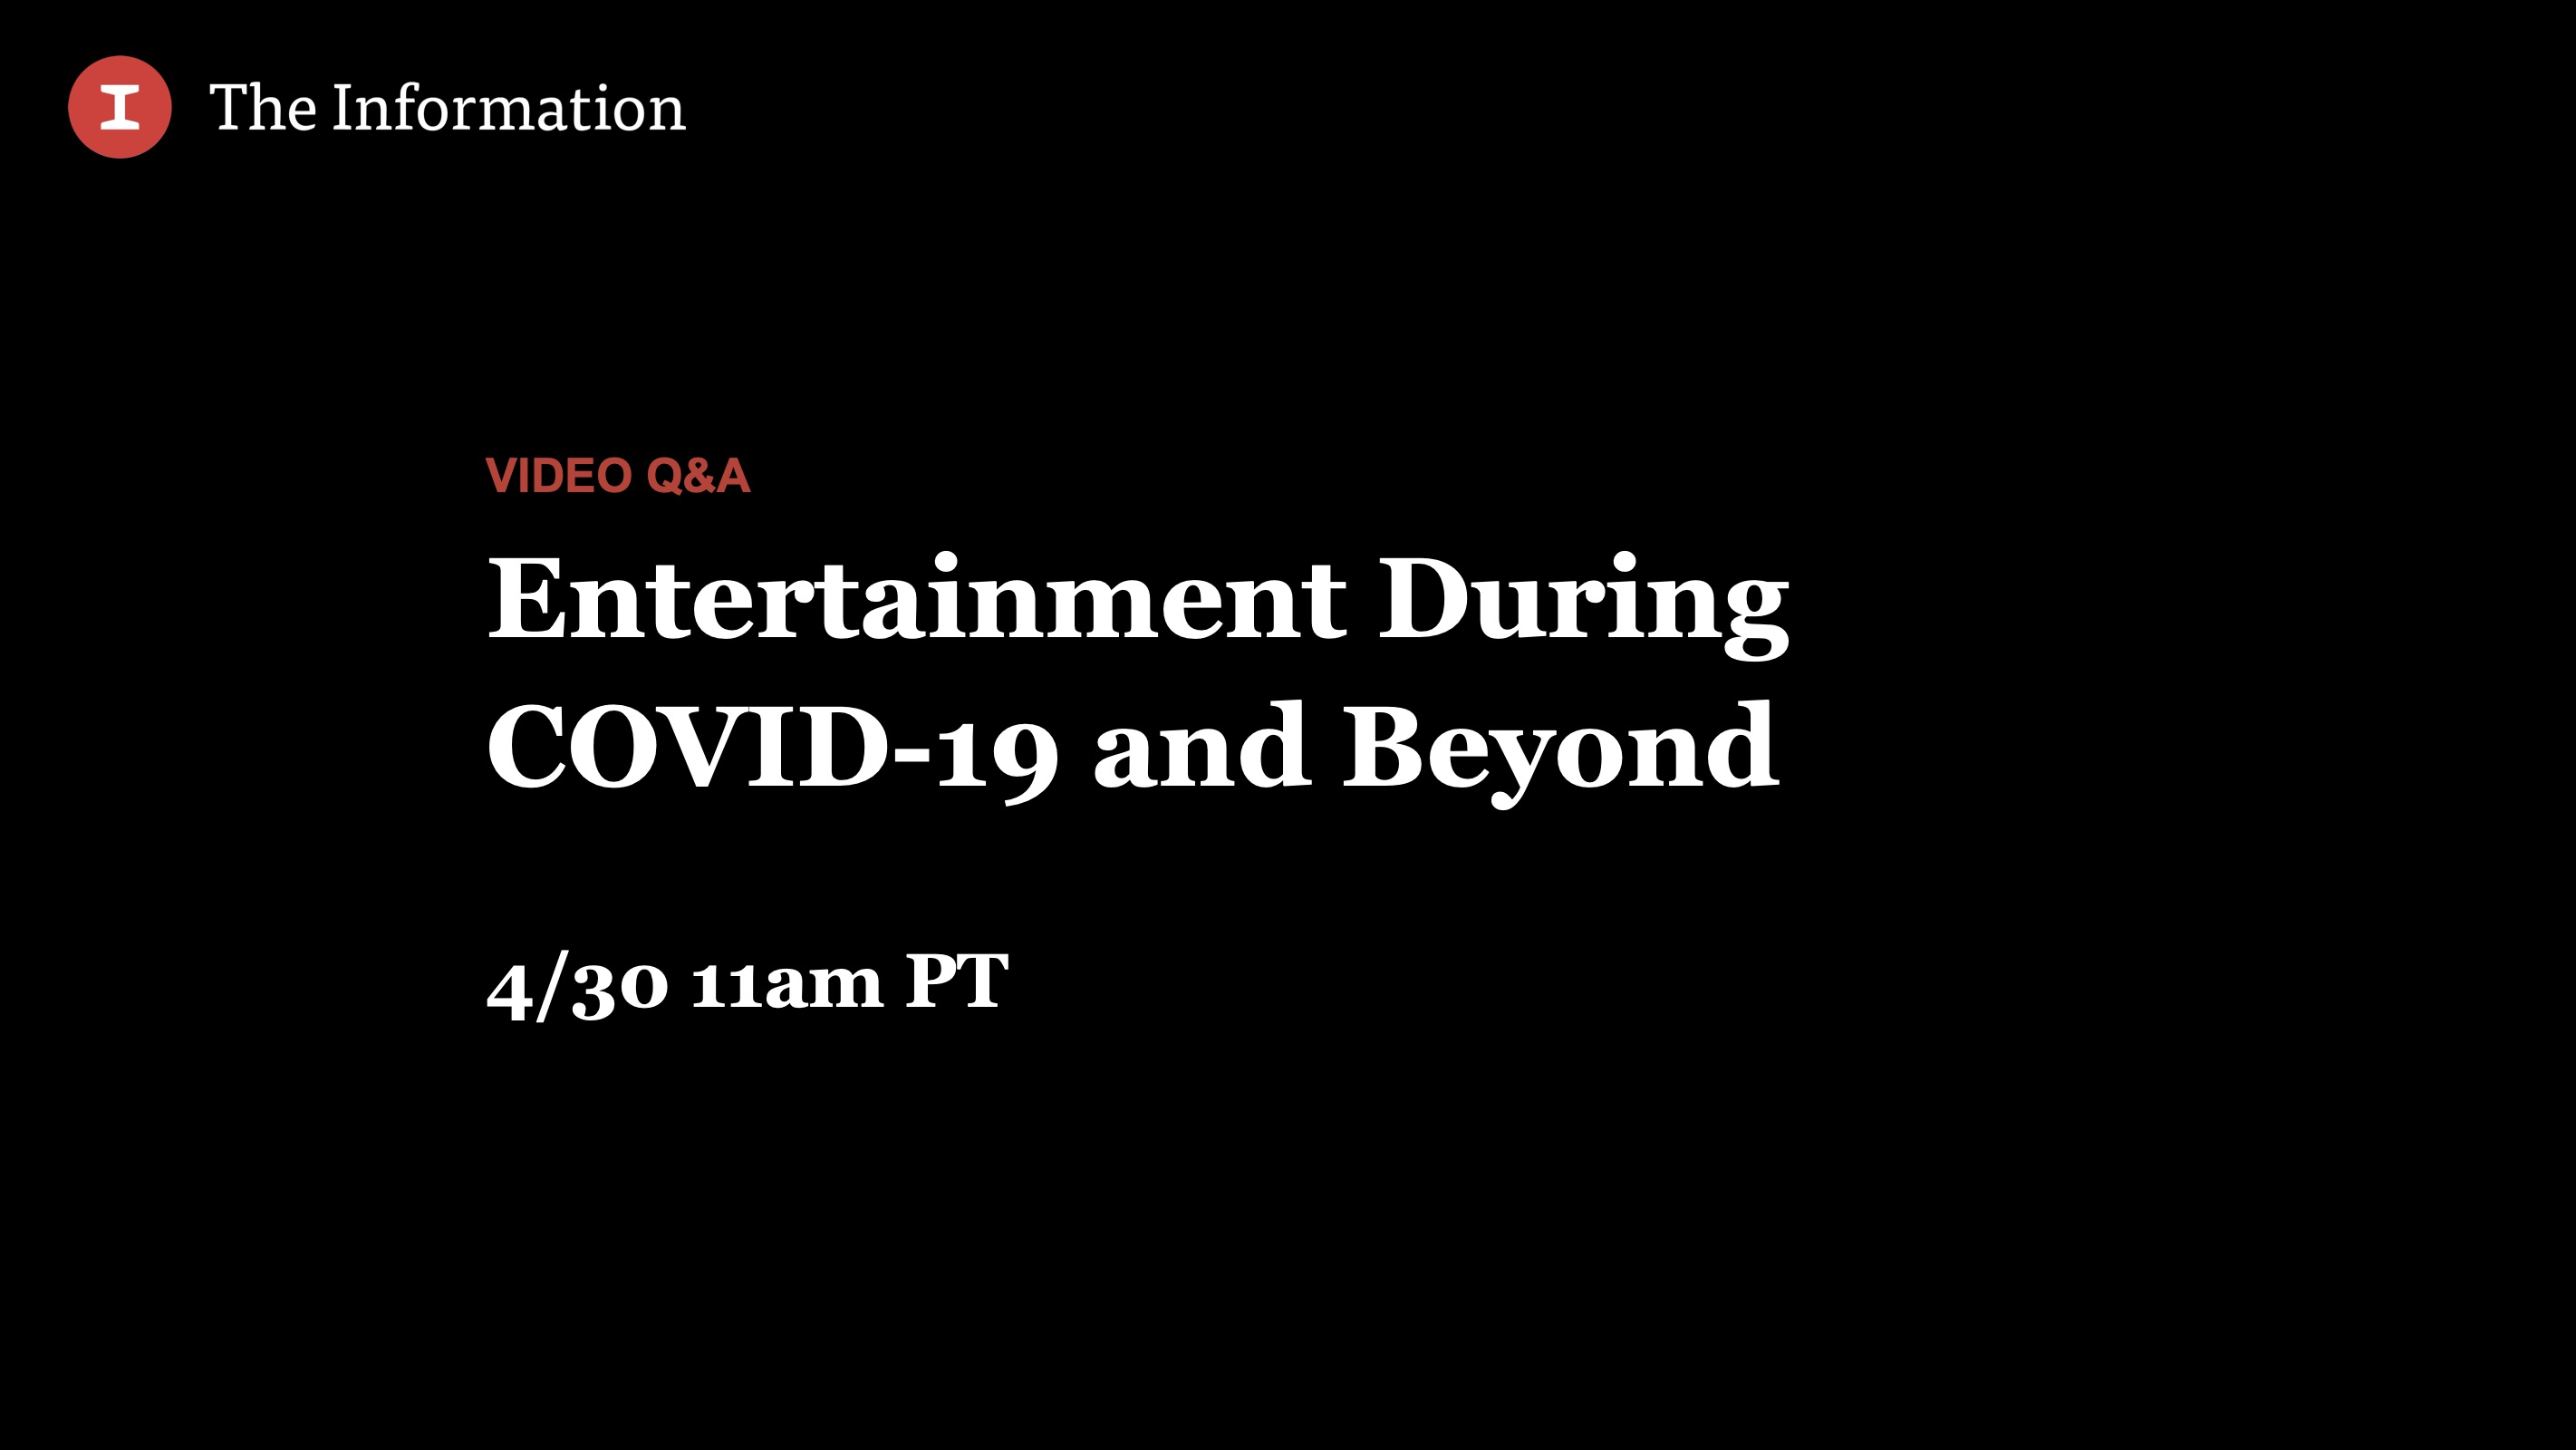 Entertainment During COVID-19 and Beyond